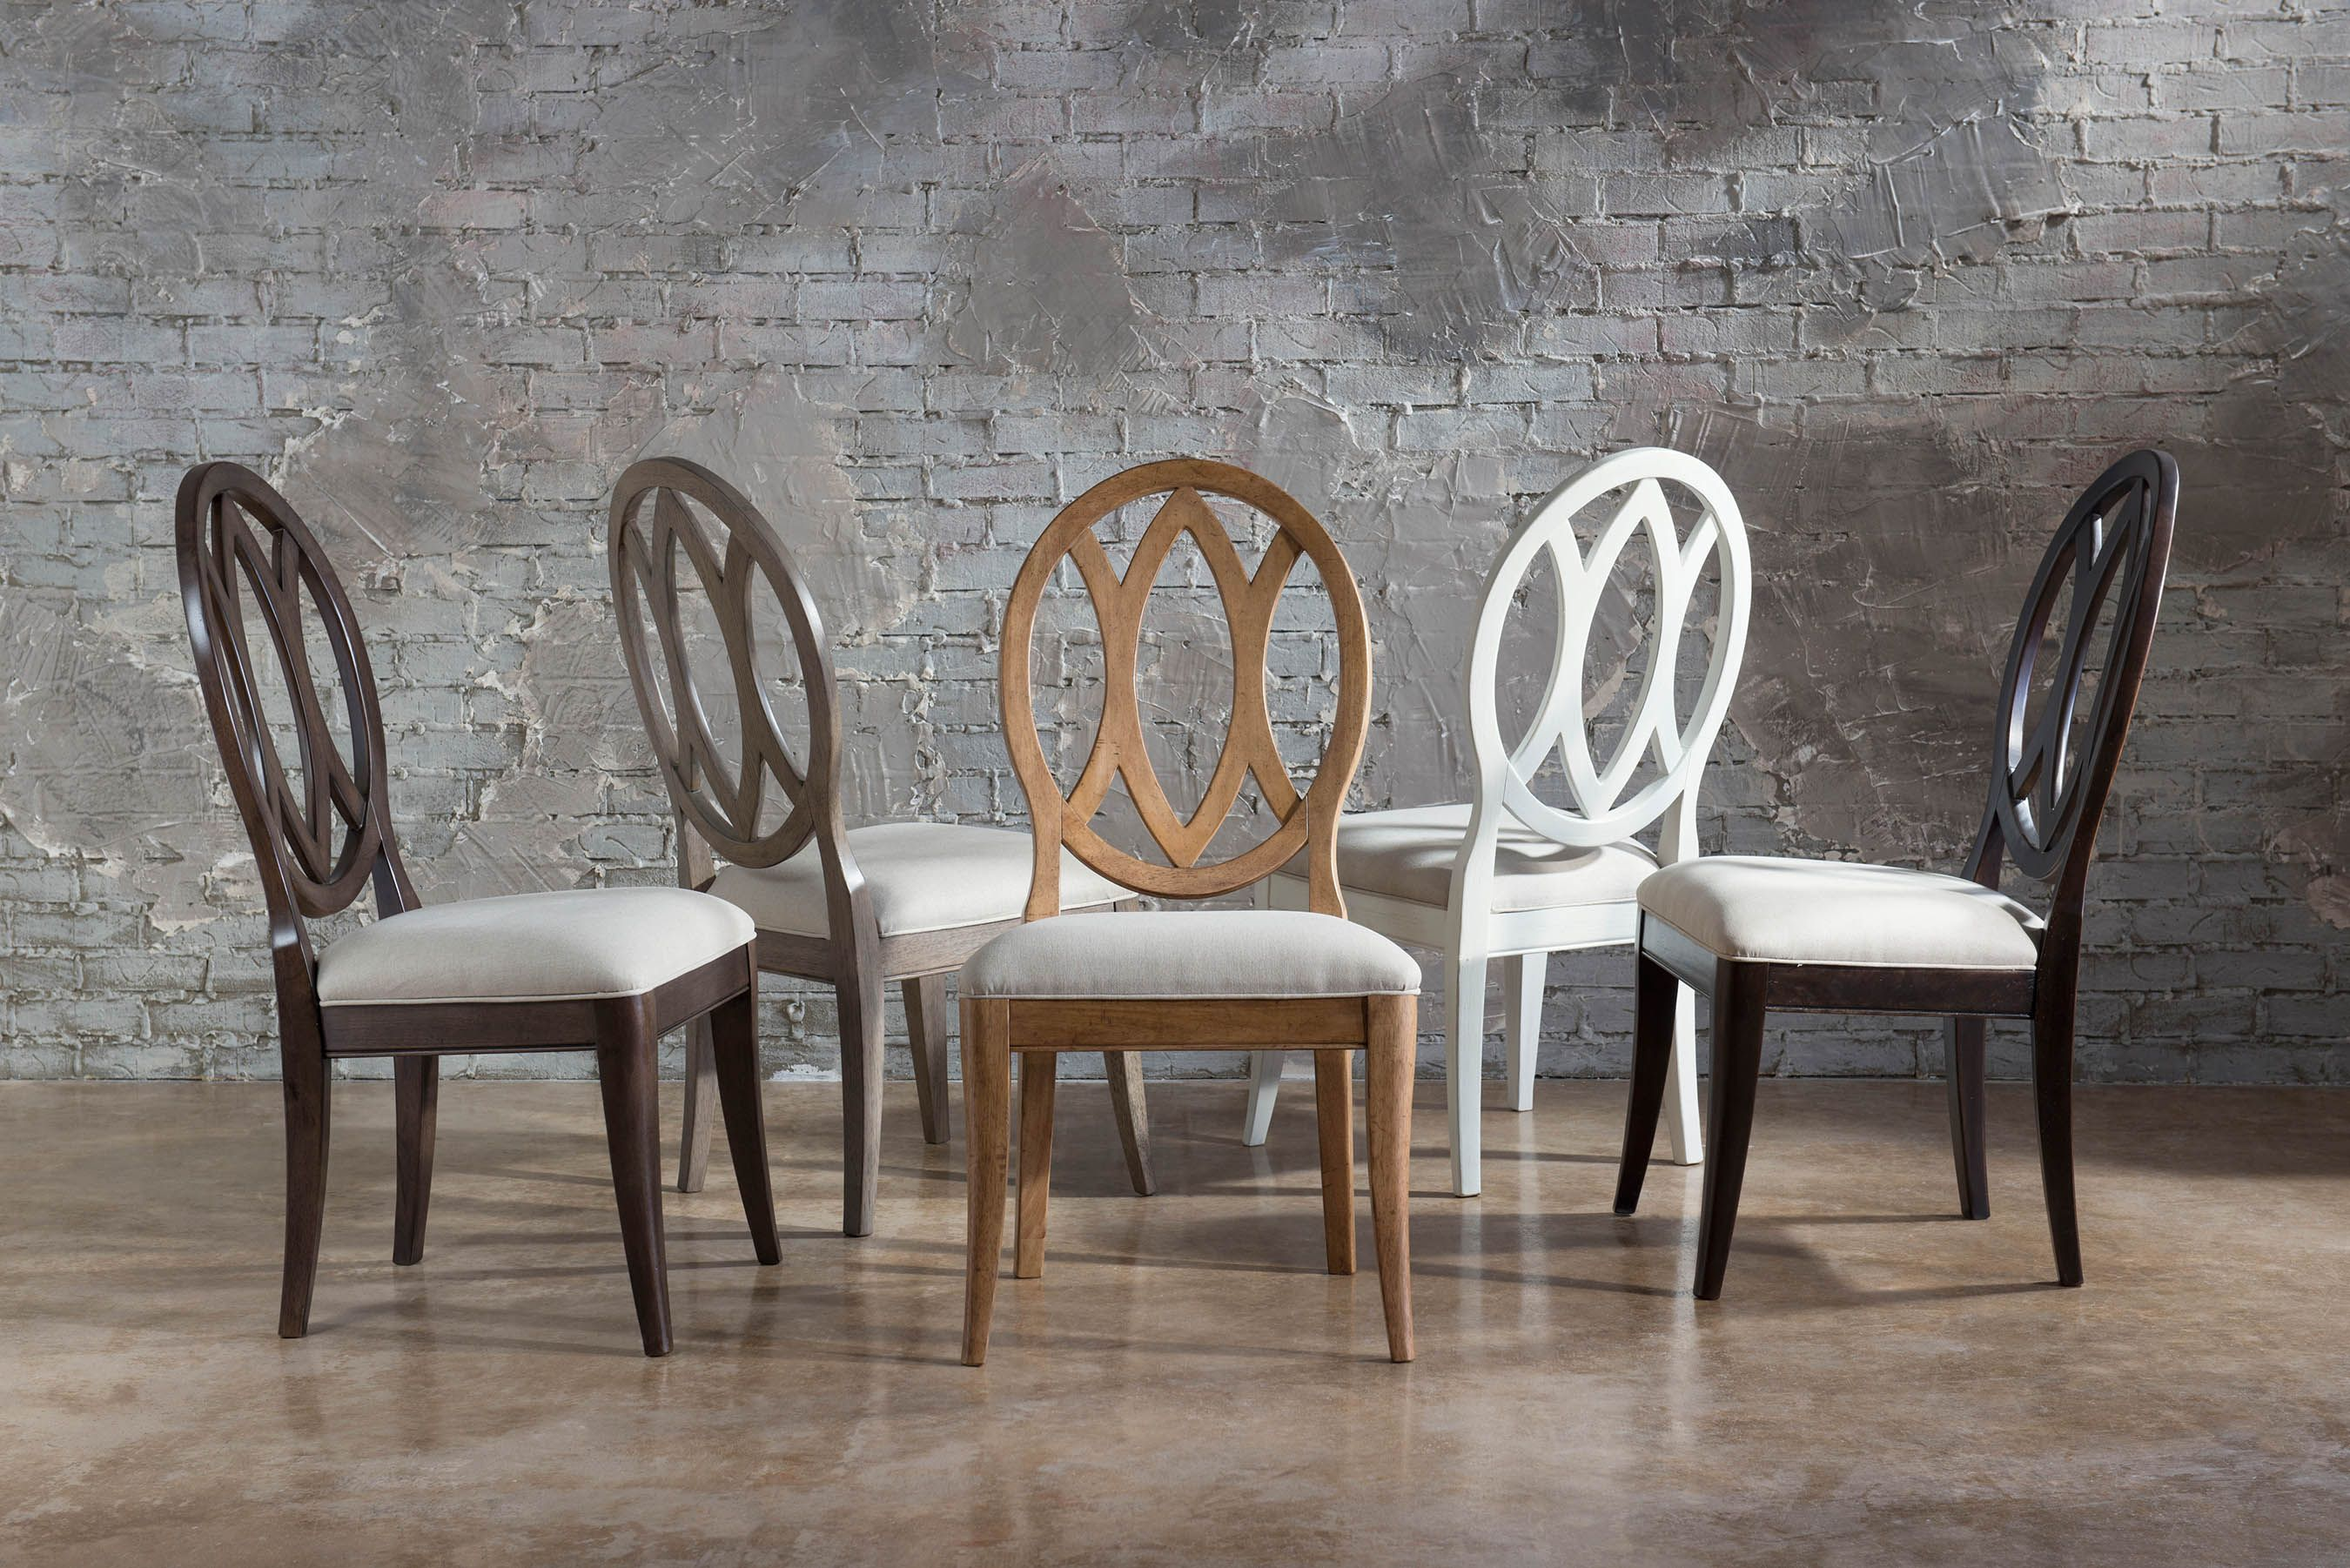 Rachael Ray Home Everyday Dining Legacy Classic Furniture Furniture Homefurniture Homedecor Dining Diningroomf Legacy Classic Furniture Dining Furniture